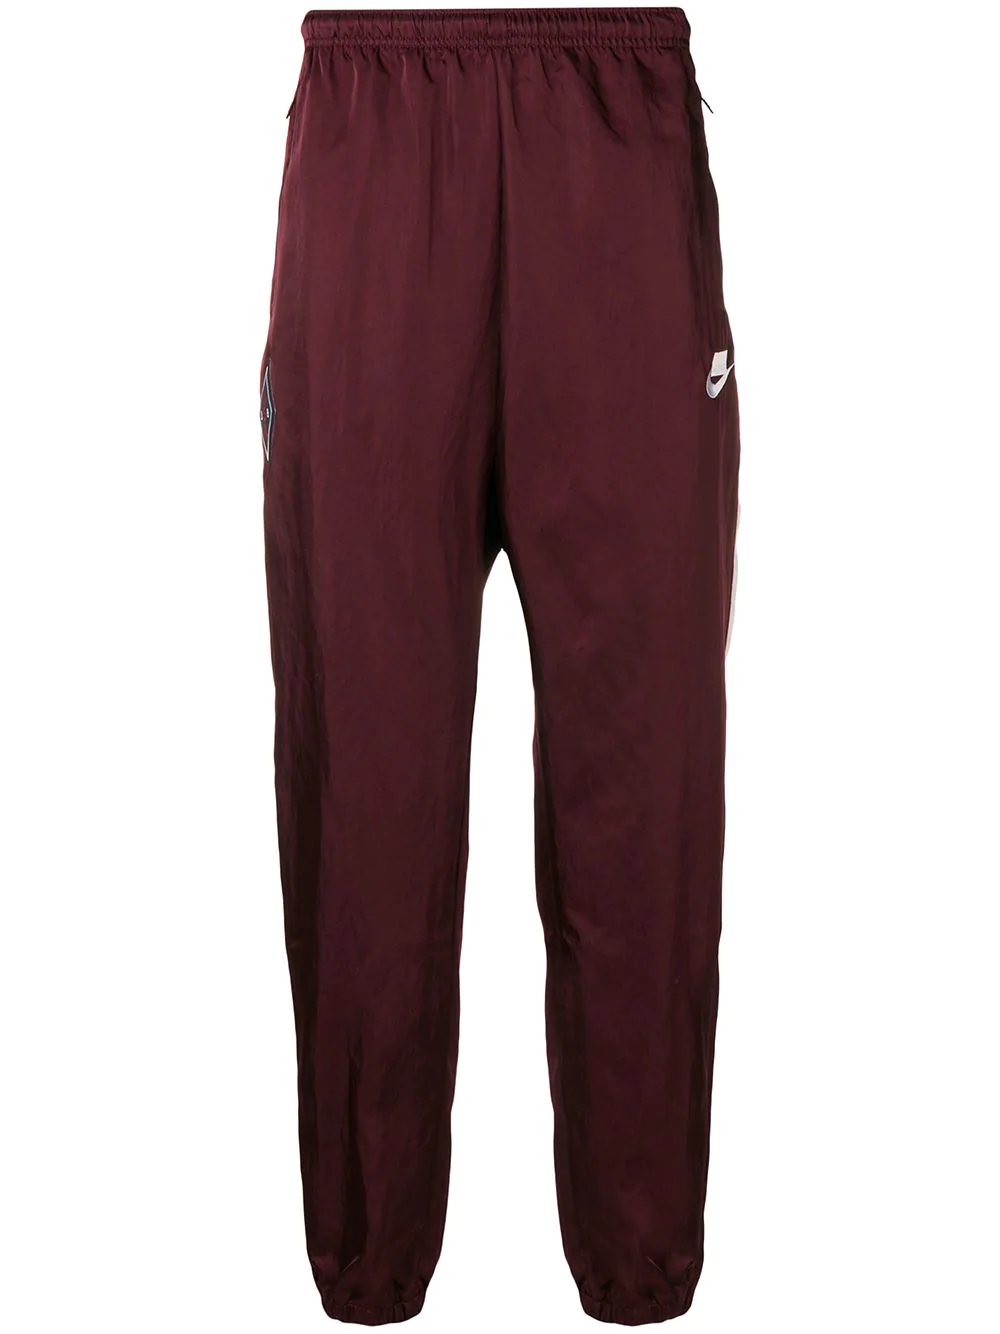 ae64f88b7238 Nike Running Track Style Trousers - Red